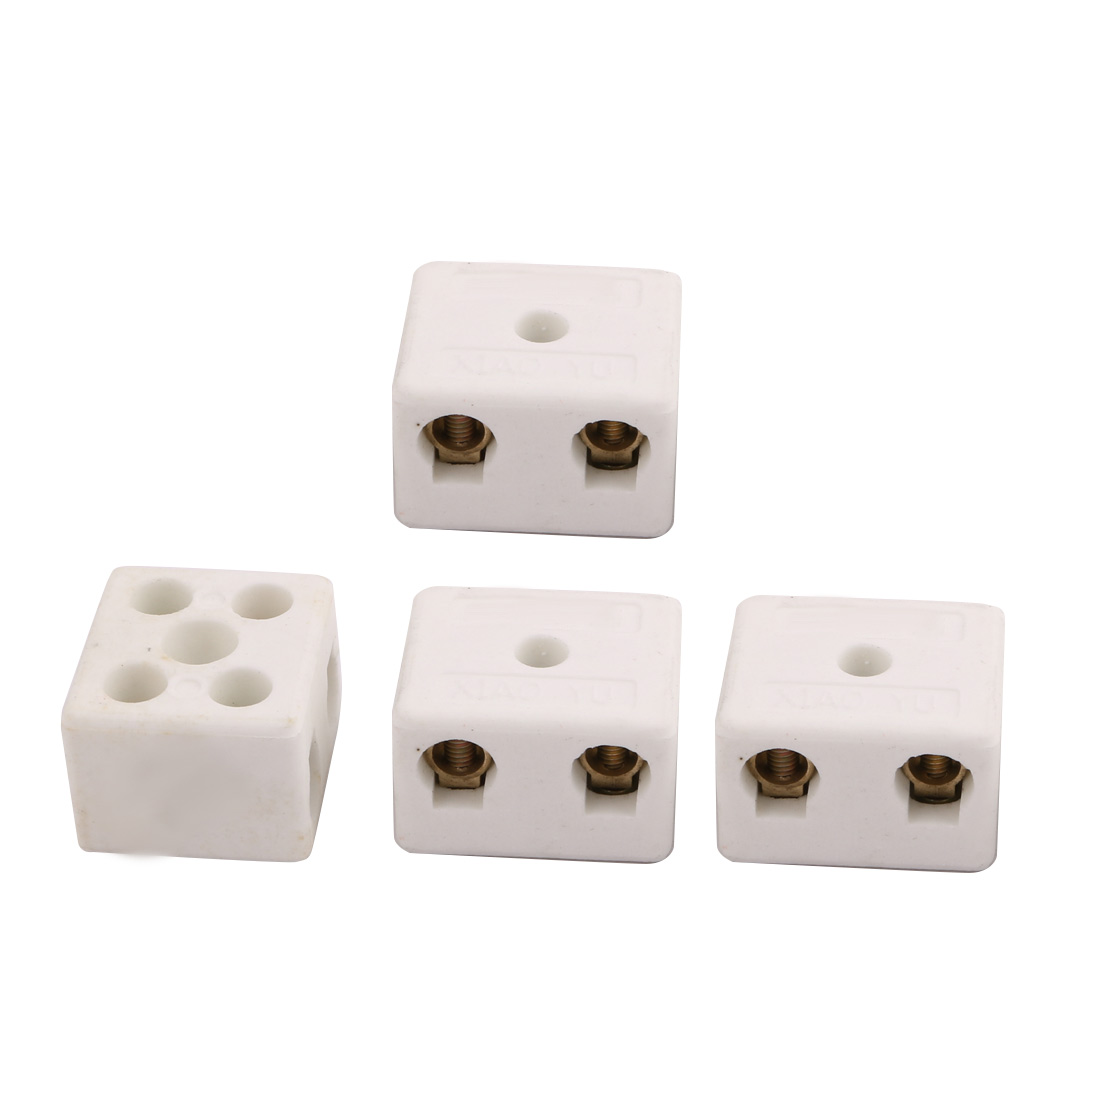 250V 15A 100W 2 Position 5 Hole Ceramic Terminal Blocks Wire Connectors 4pcs